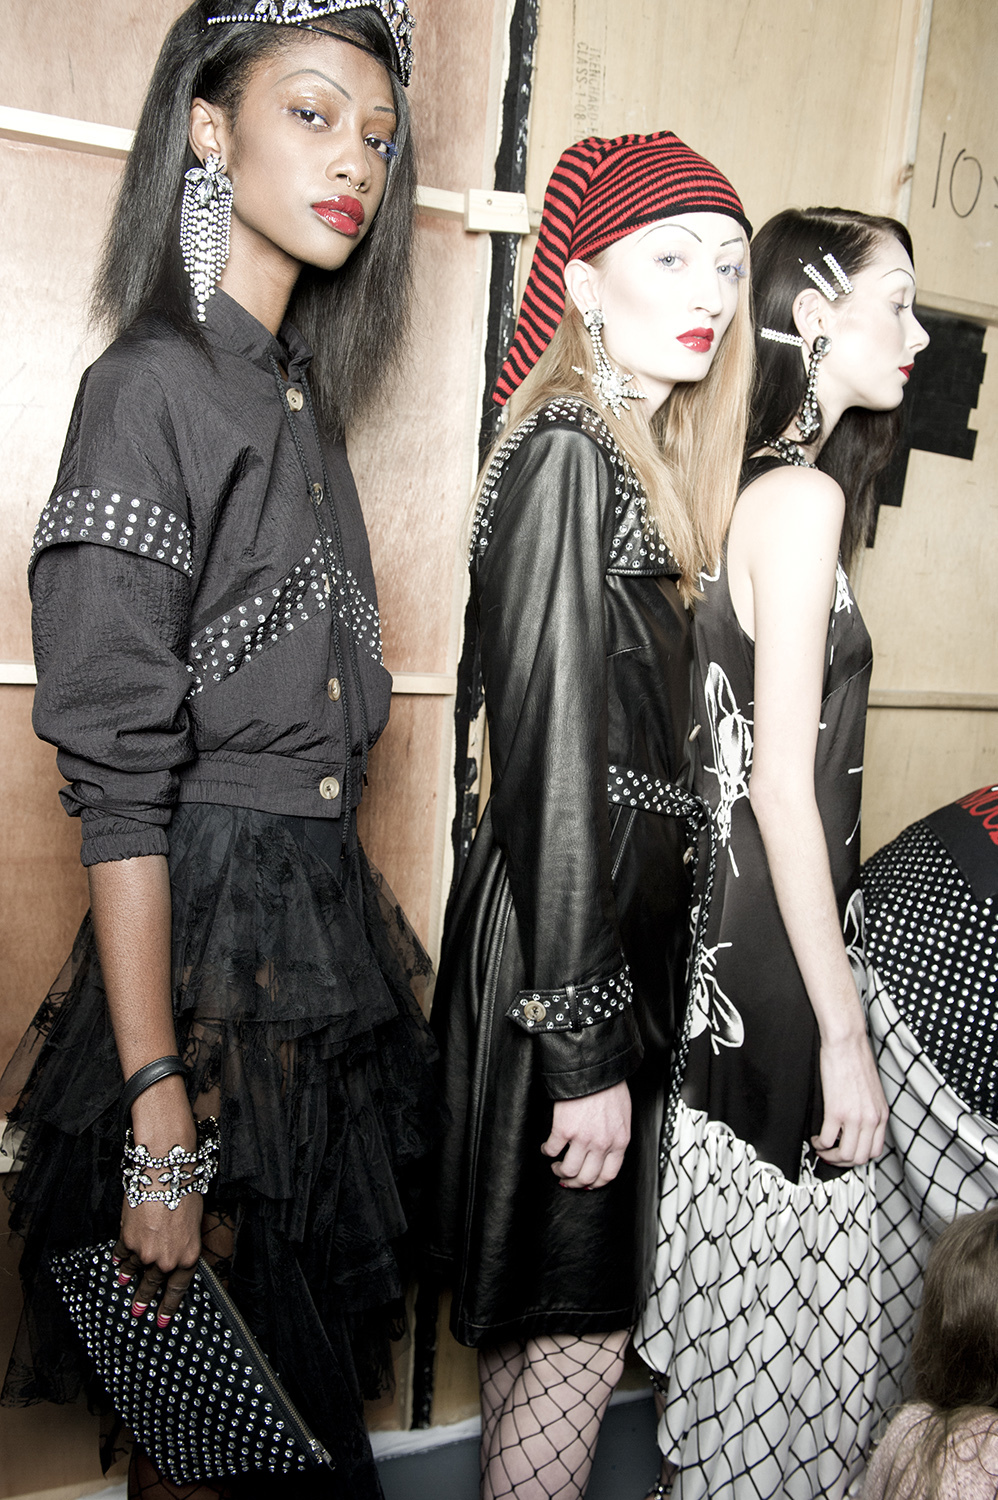 neon goths, bad girls, and bad moods at ashley williams ...